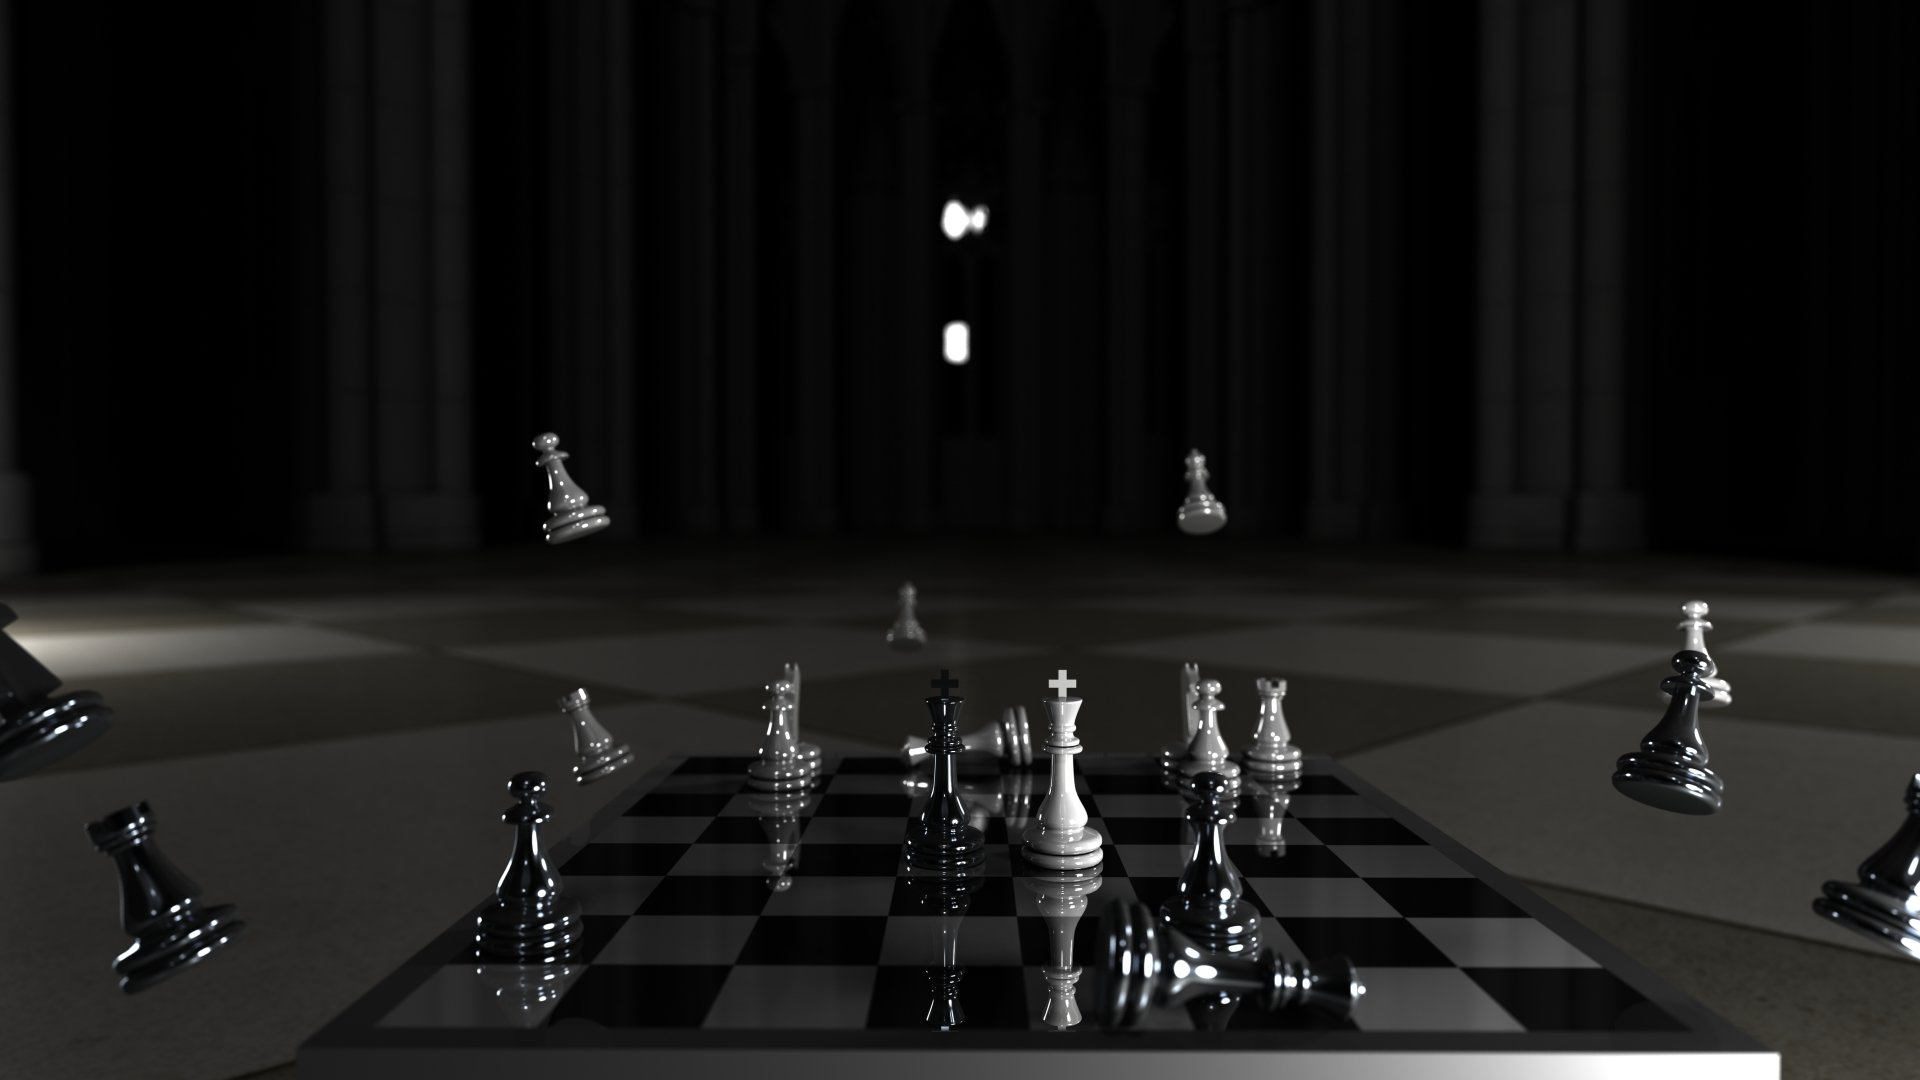 Black And White Chess Wallpaper Checkmate 4k Ultra Hd Wallpaper Background Image